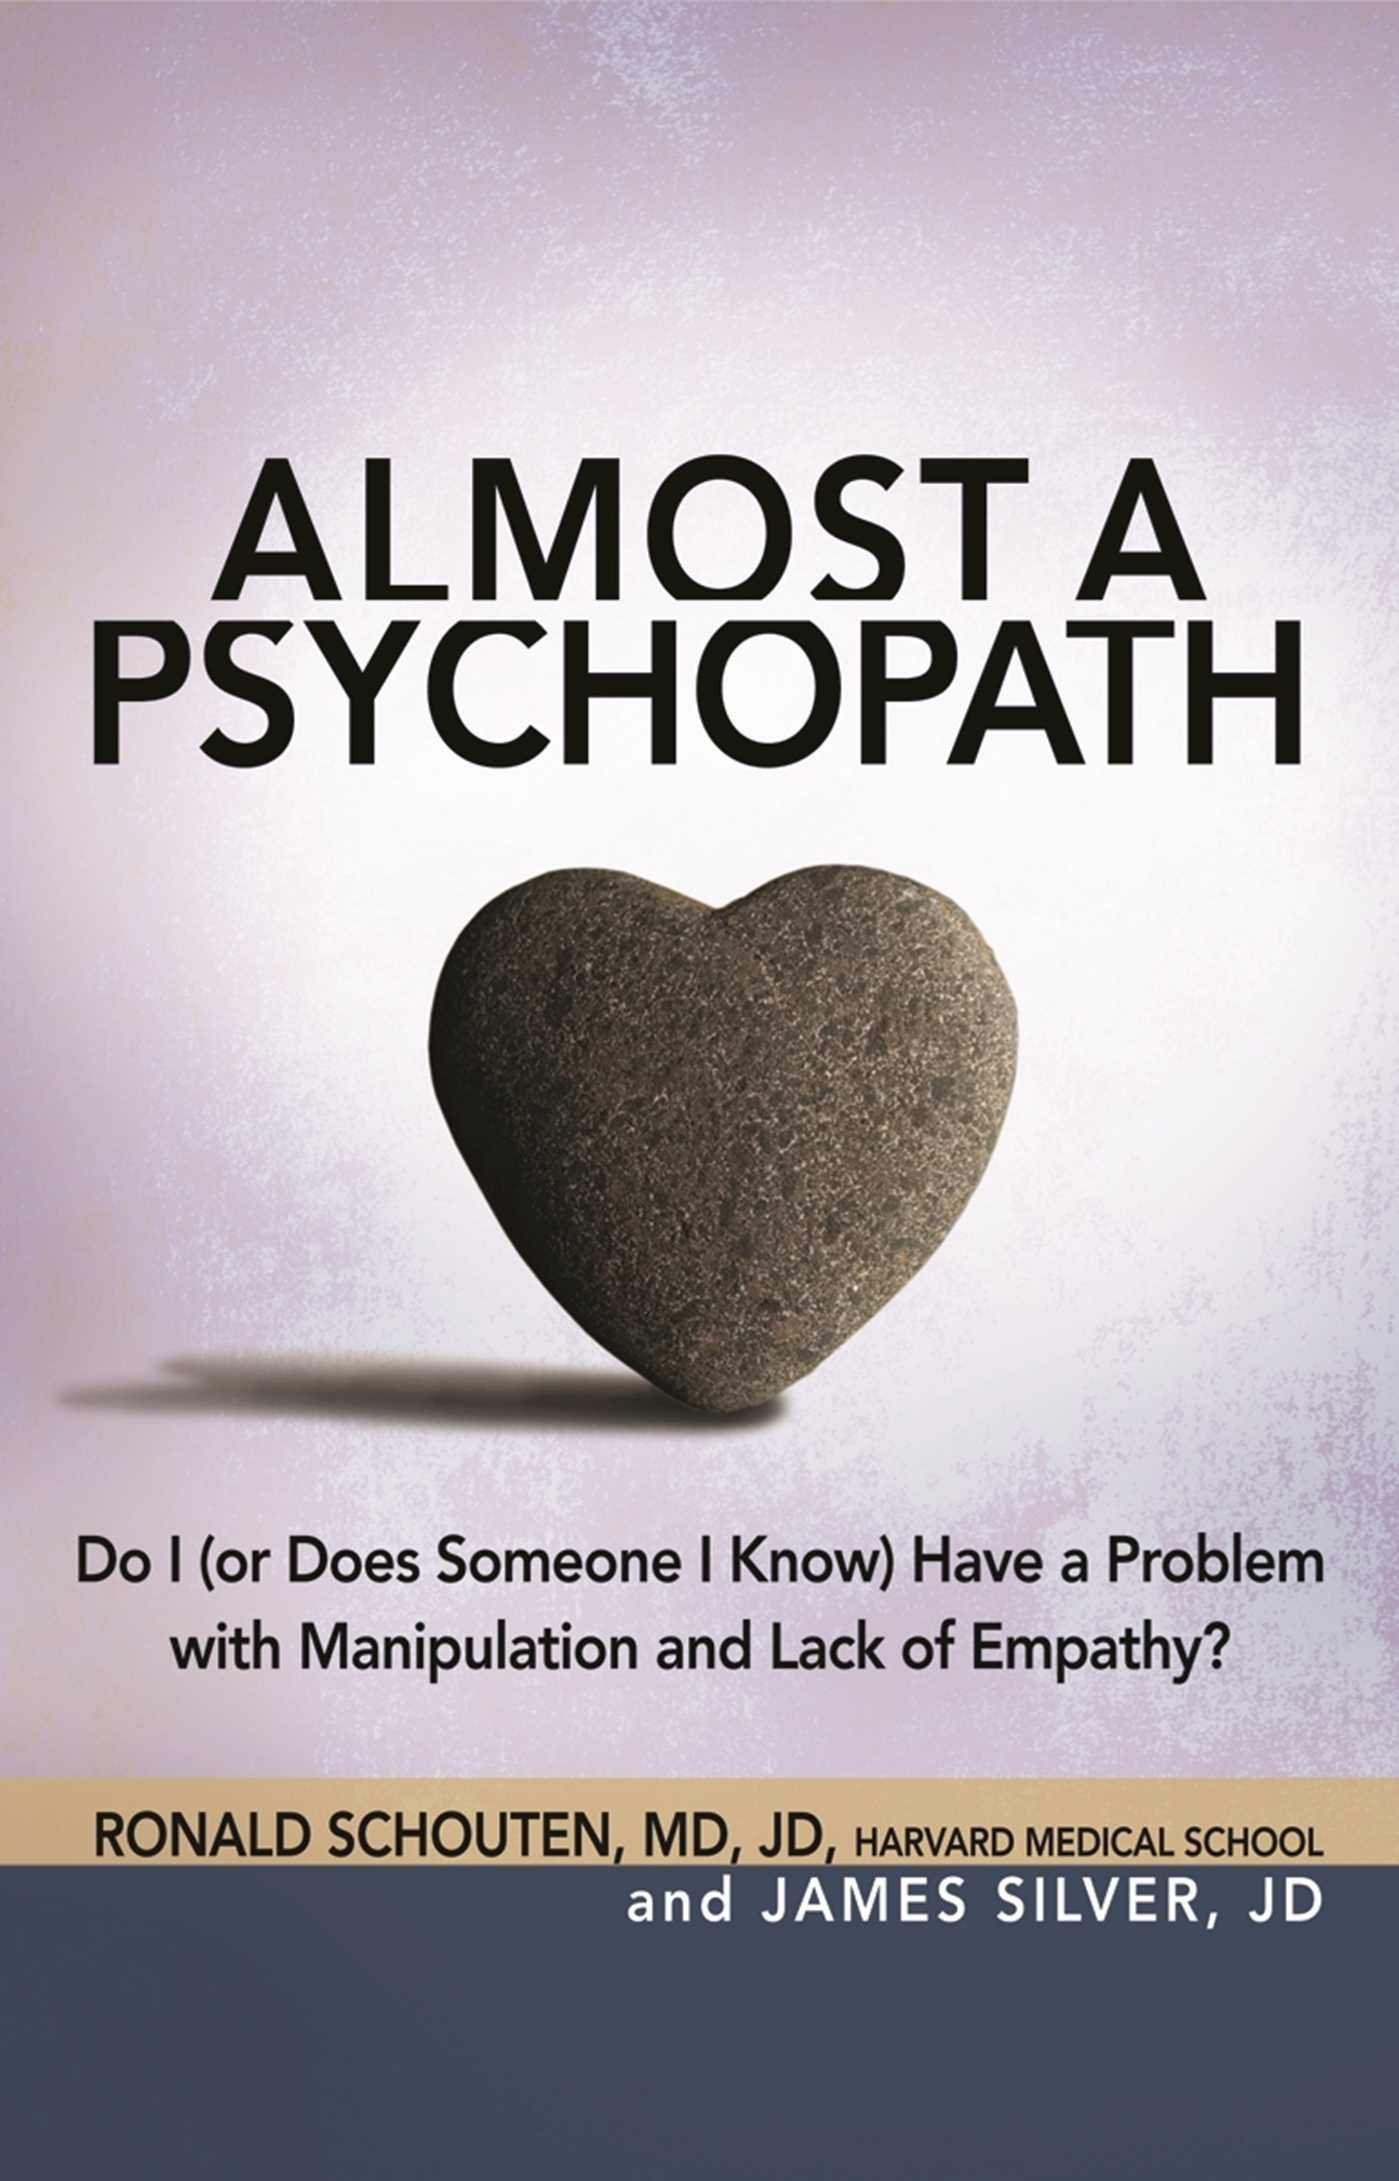 Almost a Psychopath: Do I (or Does Someone I Know) Have a Problem with Manipulation and Lack of Empathy? (The Almost Effect) pdf